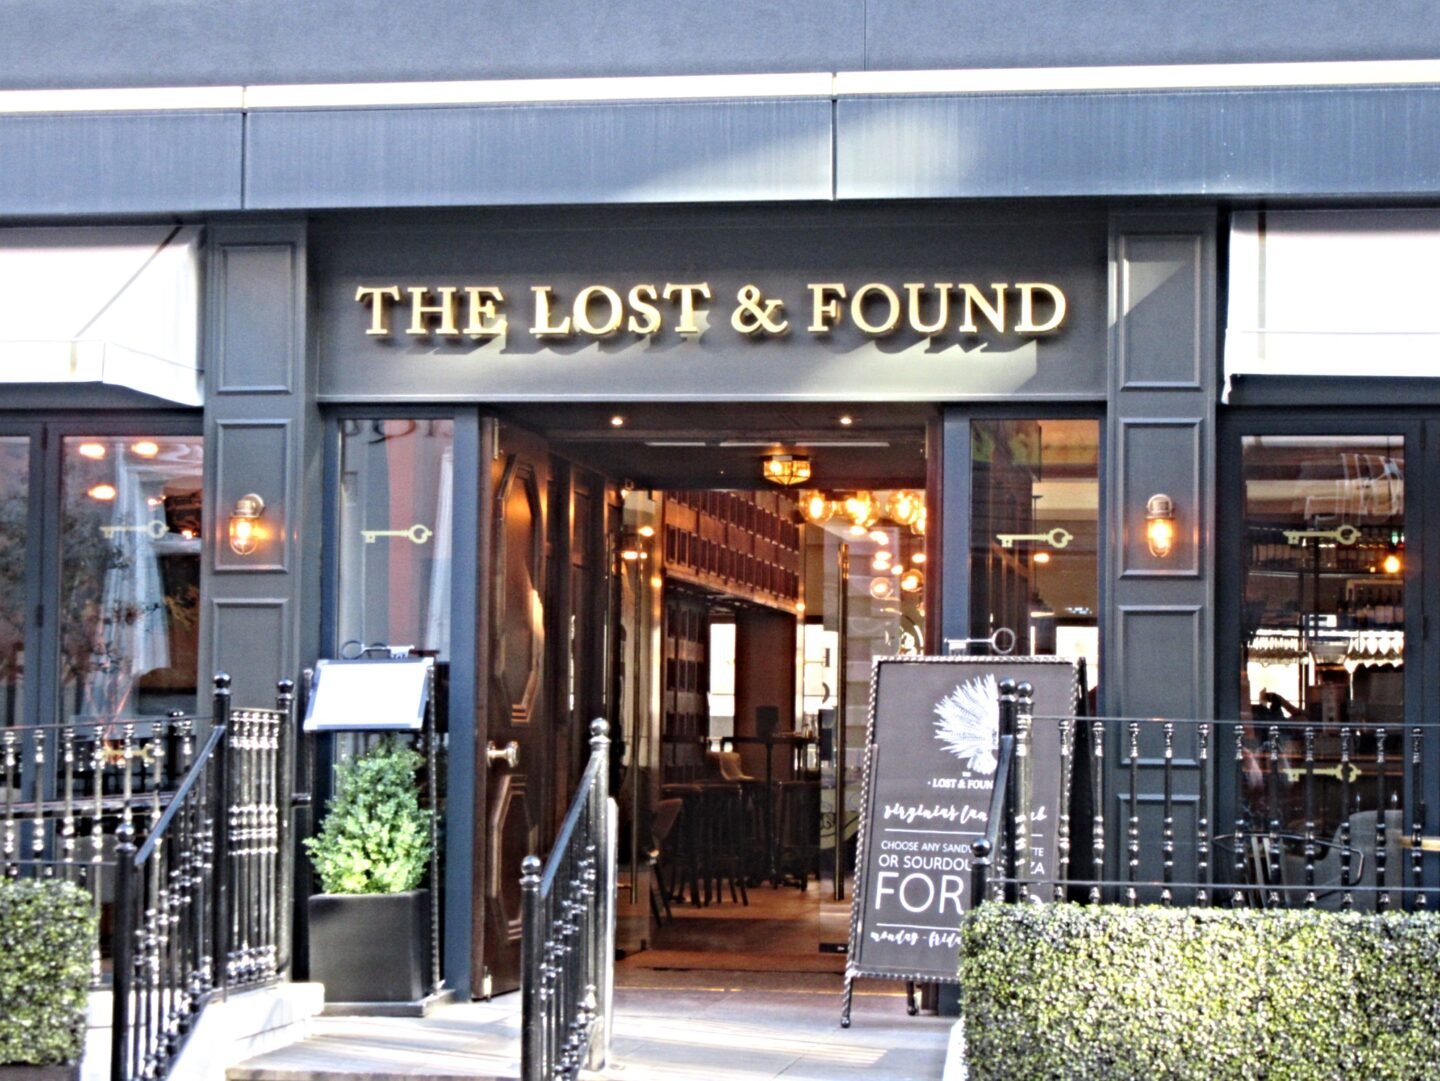 England: The Lost & Found – an Ornithological Adventure, Leeds, Yorkshire